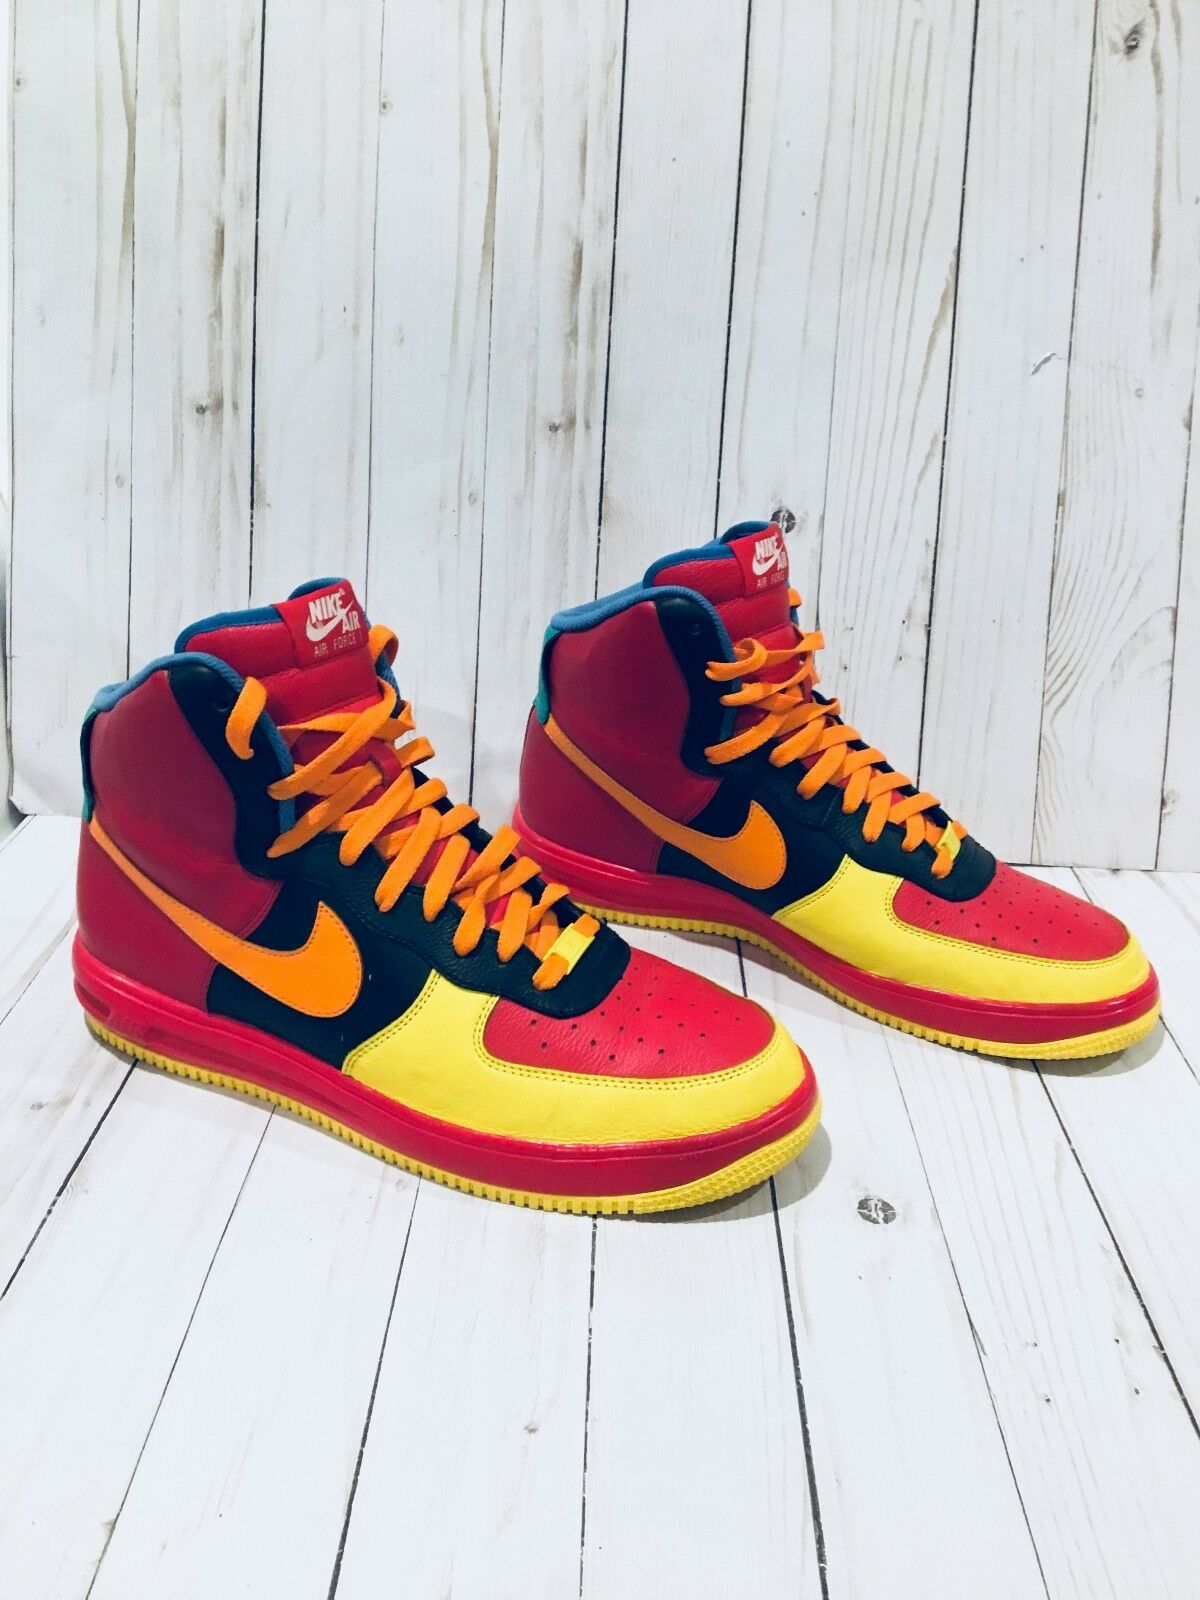 RARE Nike I.D. Air Force 1 High Top shoes 808787-991 Men's 11.5 Red,orange,Ylw